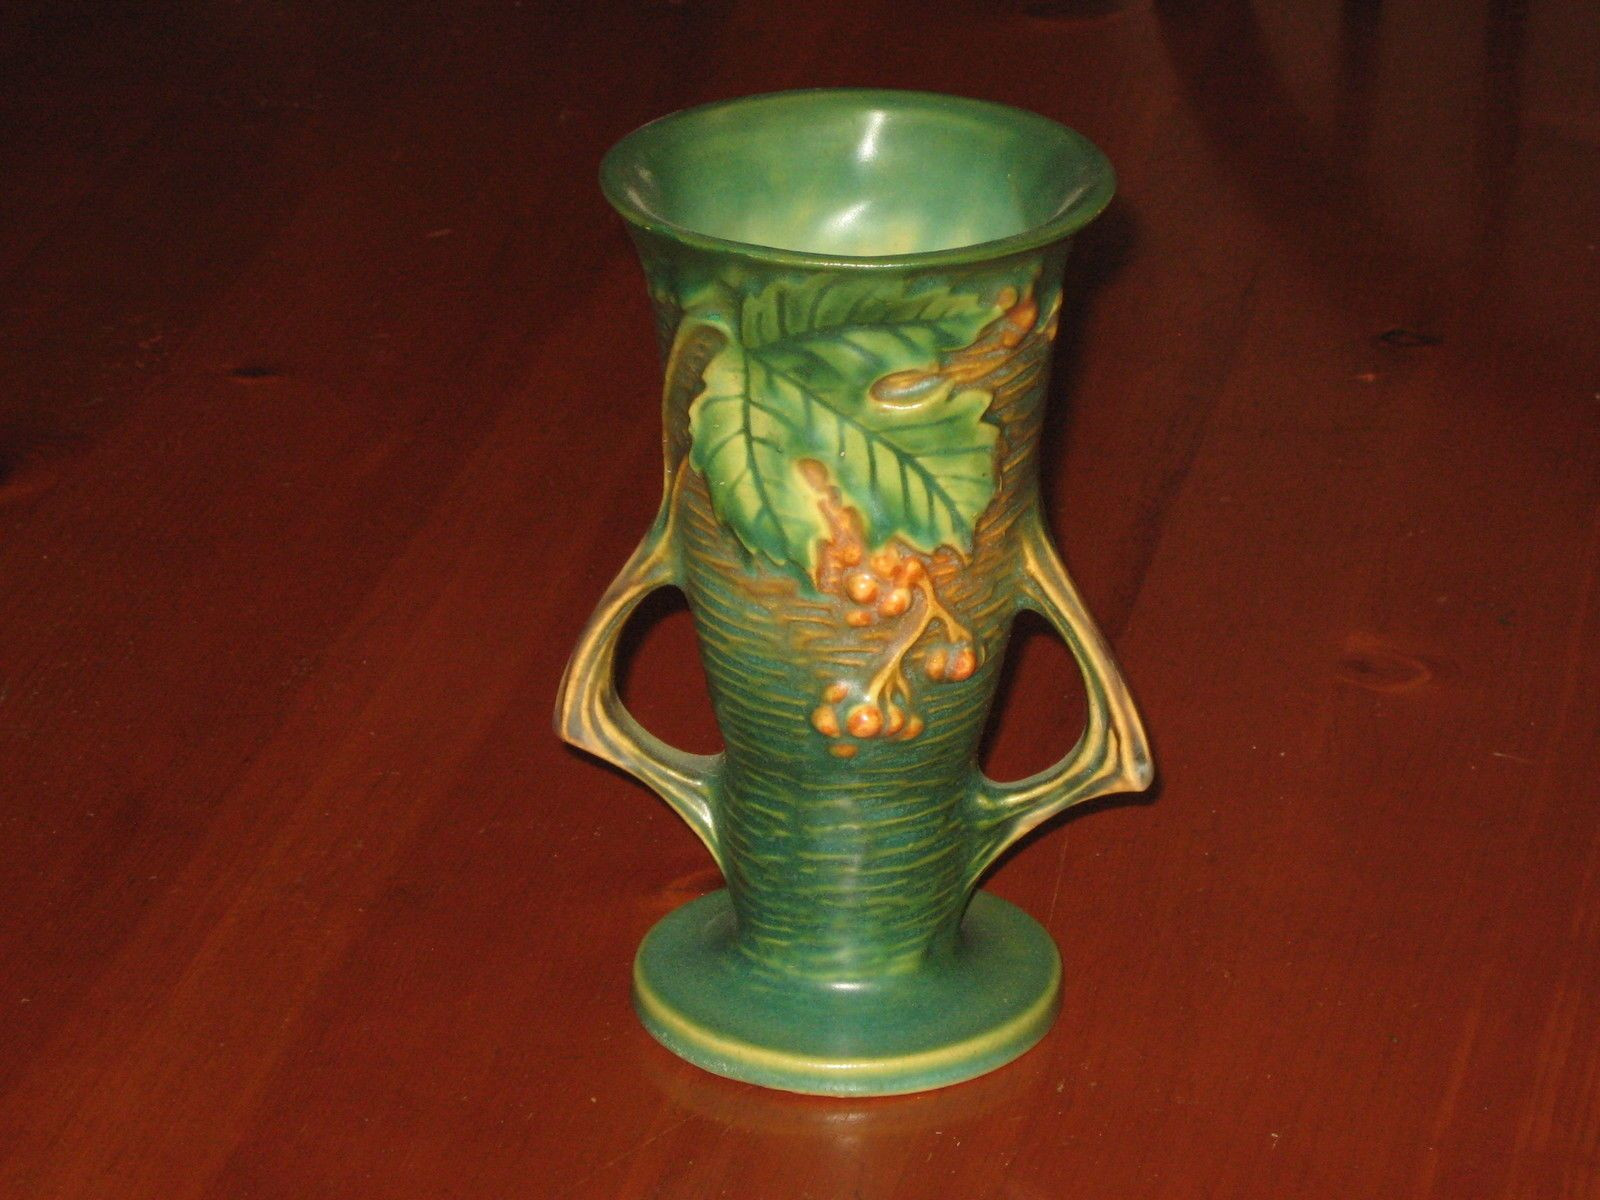 roseville pottery vases value of beautiful vintage roseville bushberry vase 30 6 green ebay within beautiful vintage roseville bushberry vase 30 6 green ebay